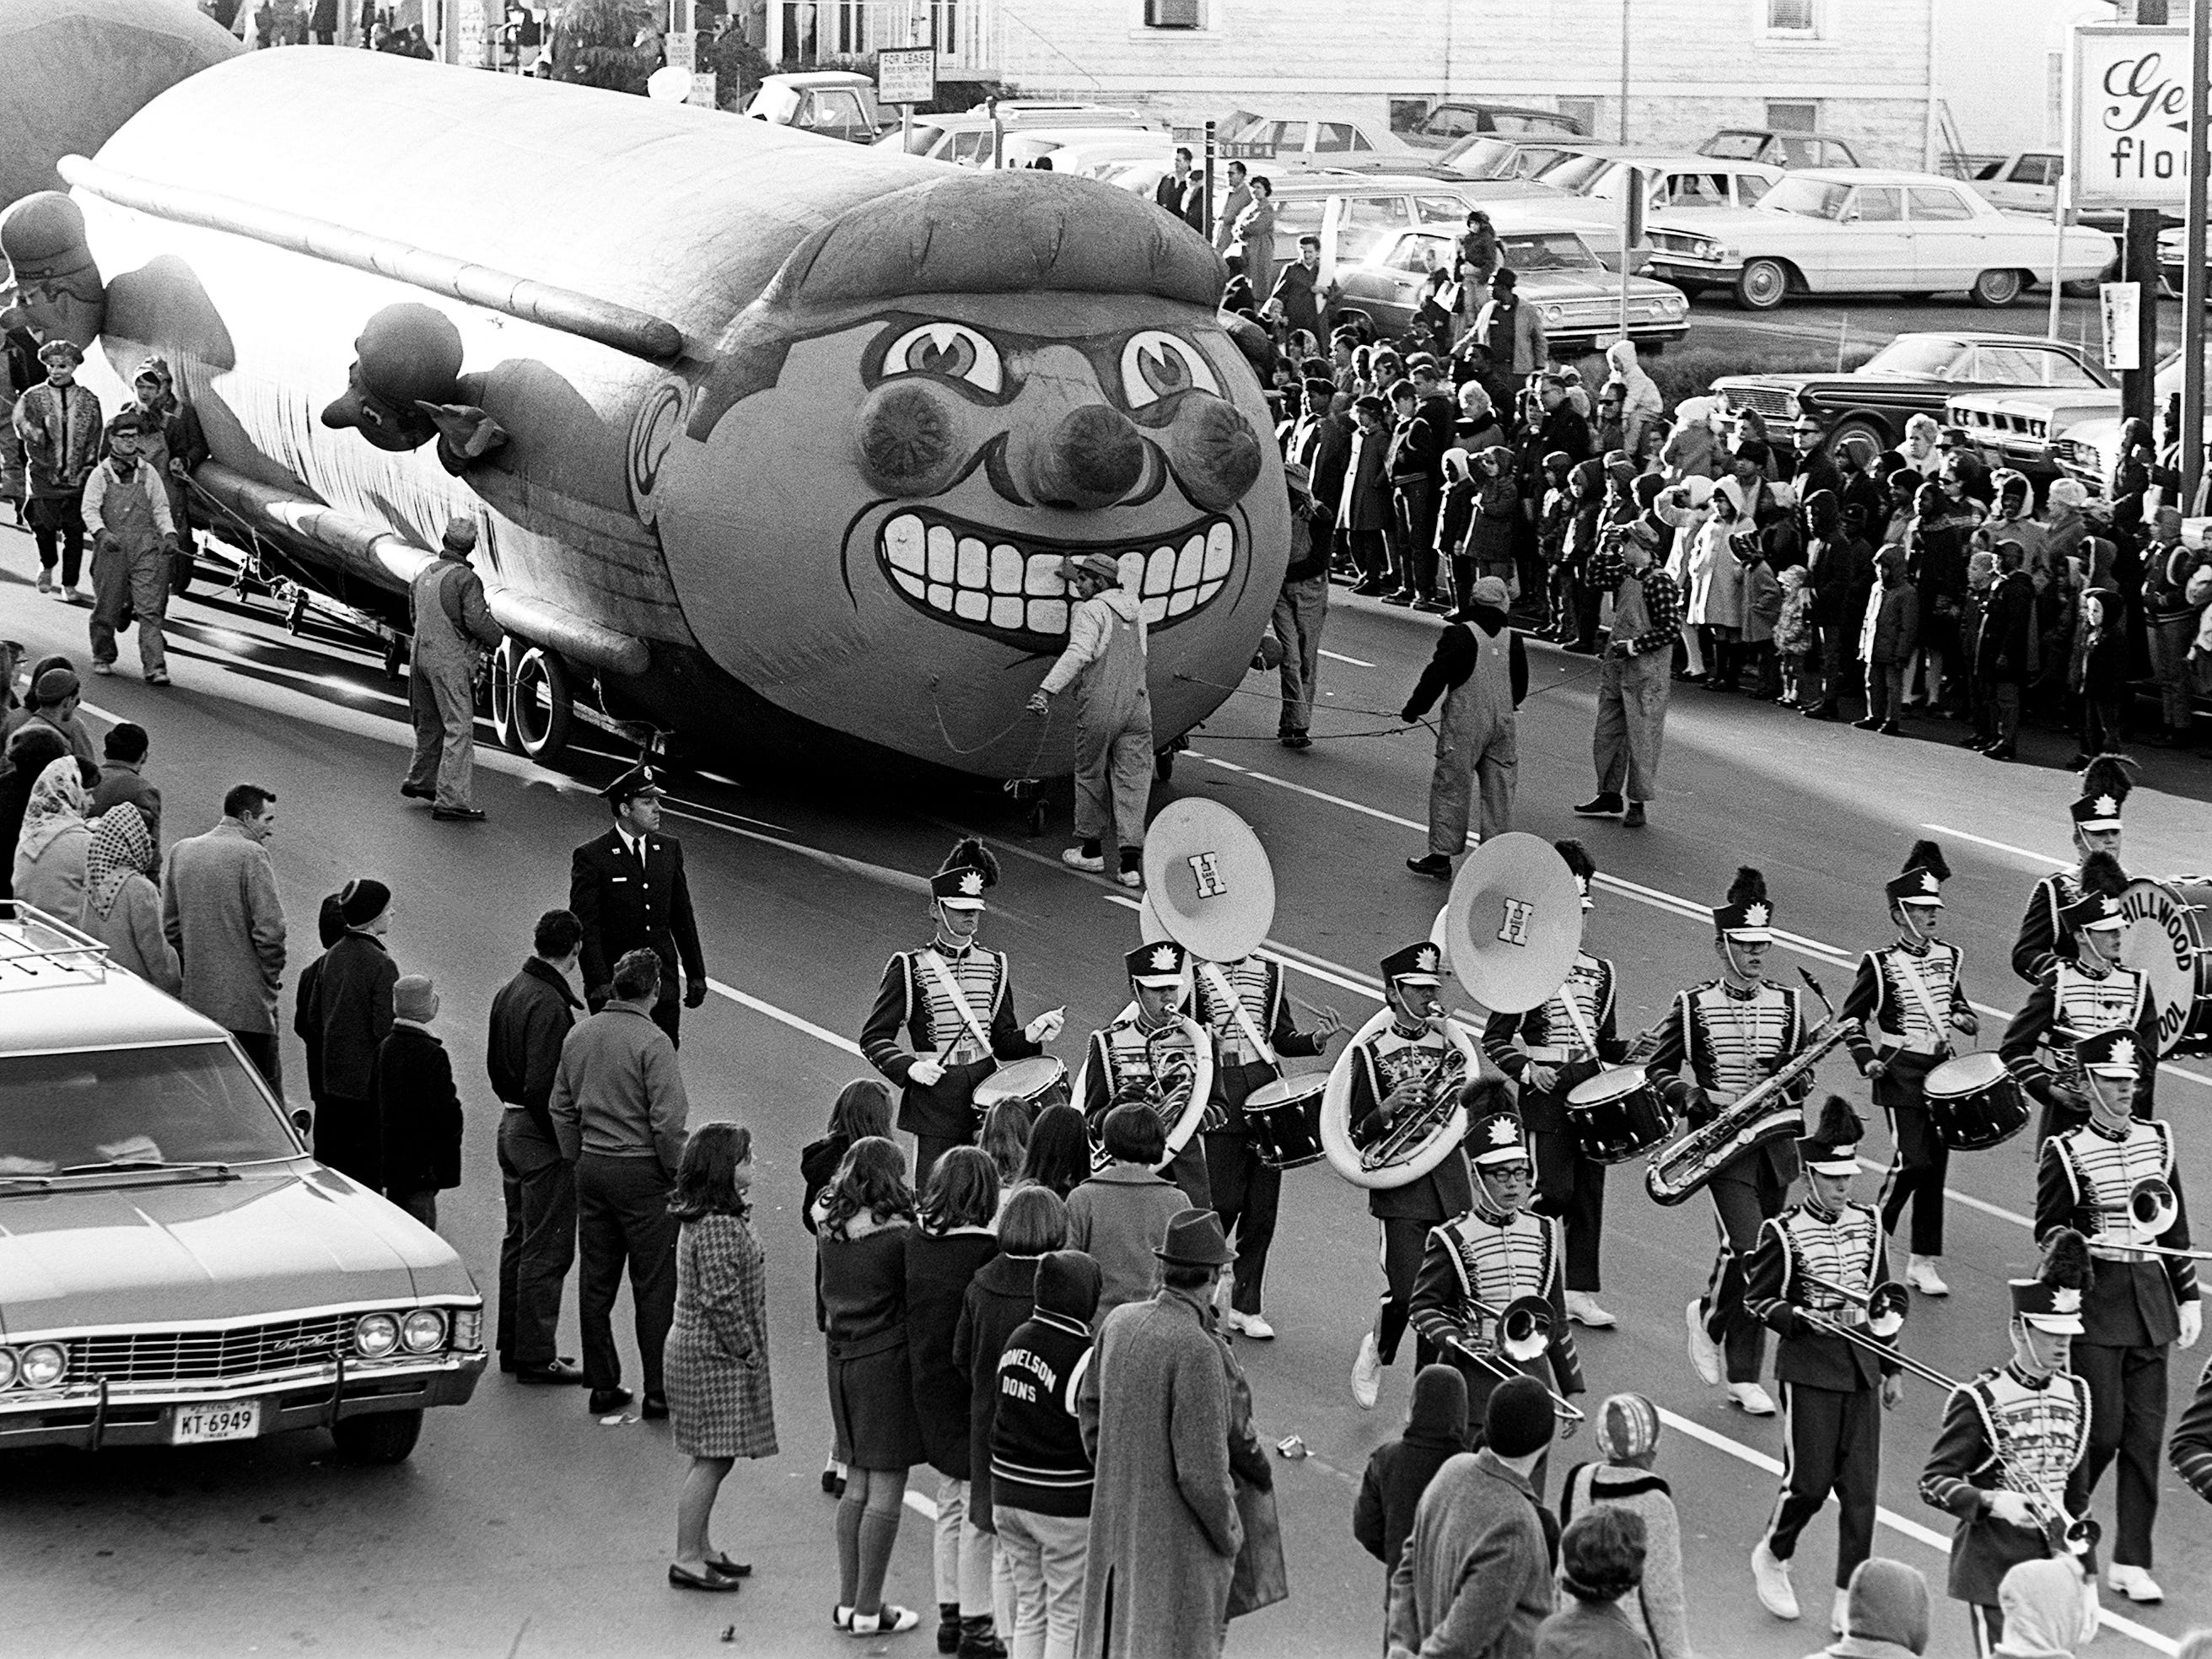 A grinning giant locomotive and the Hillwood High School marching band delighted some of the estimated crowd of 125,000 during the 16th annual Nashville Christmas parade Dec. 8, 1968.